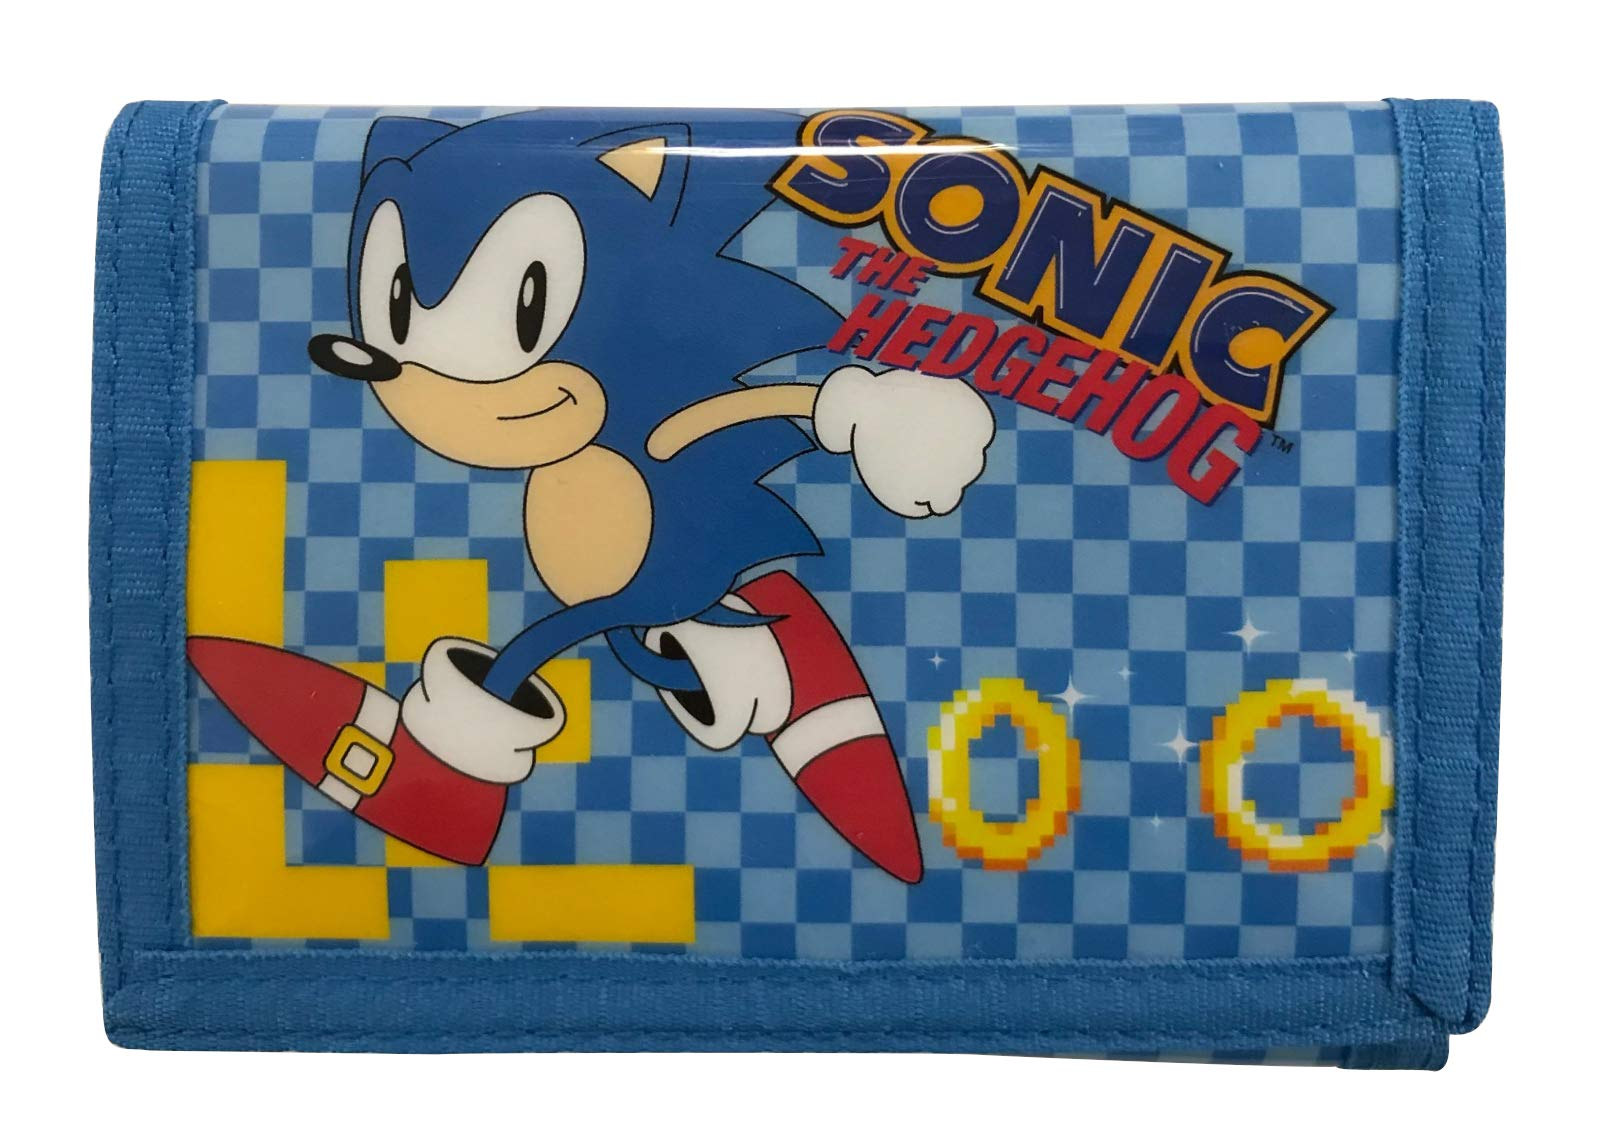 Sonic The Hedgehog Card And Coin Tri Fold Wallet Buy Online In Cambodia Hedgehog Products In Cambodia See Prices Reviews And Free Delivery Over 27 000 Desertcart